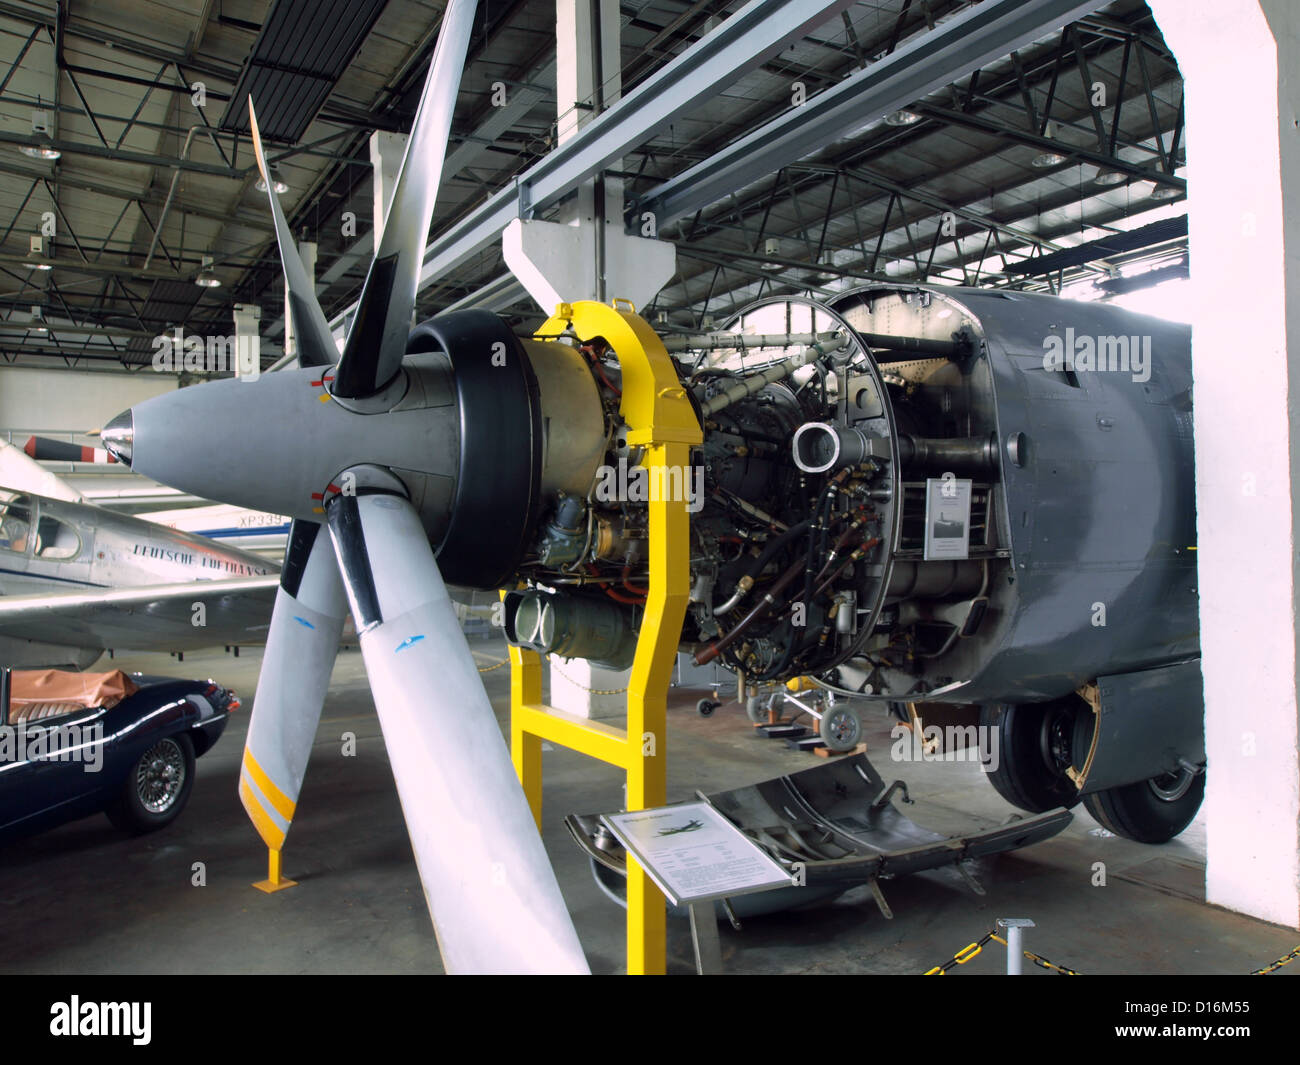 Museum of Aviation and Technology Wernigerode.Rolls-Royce Tyne turboprop engine of a Breguet Atlantique - Stock Image